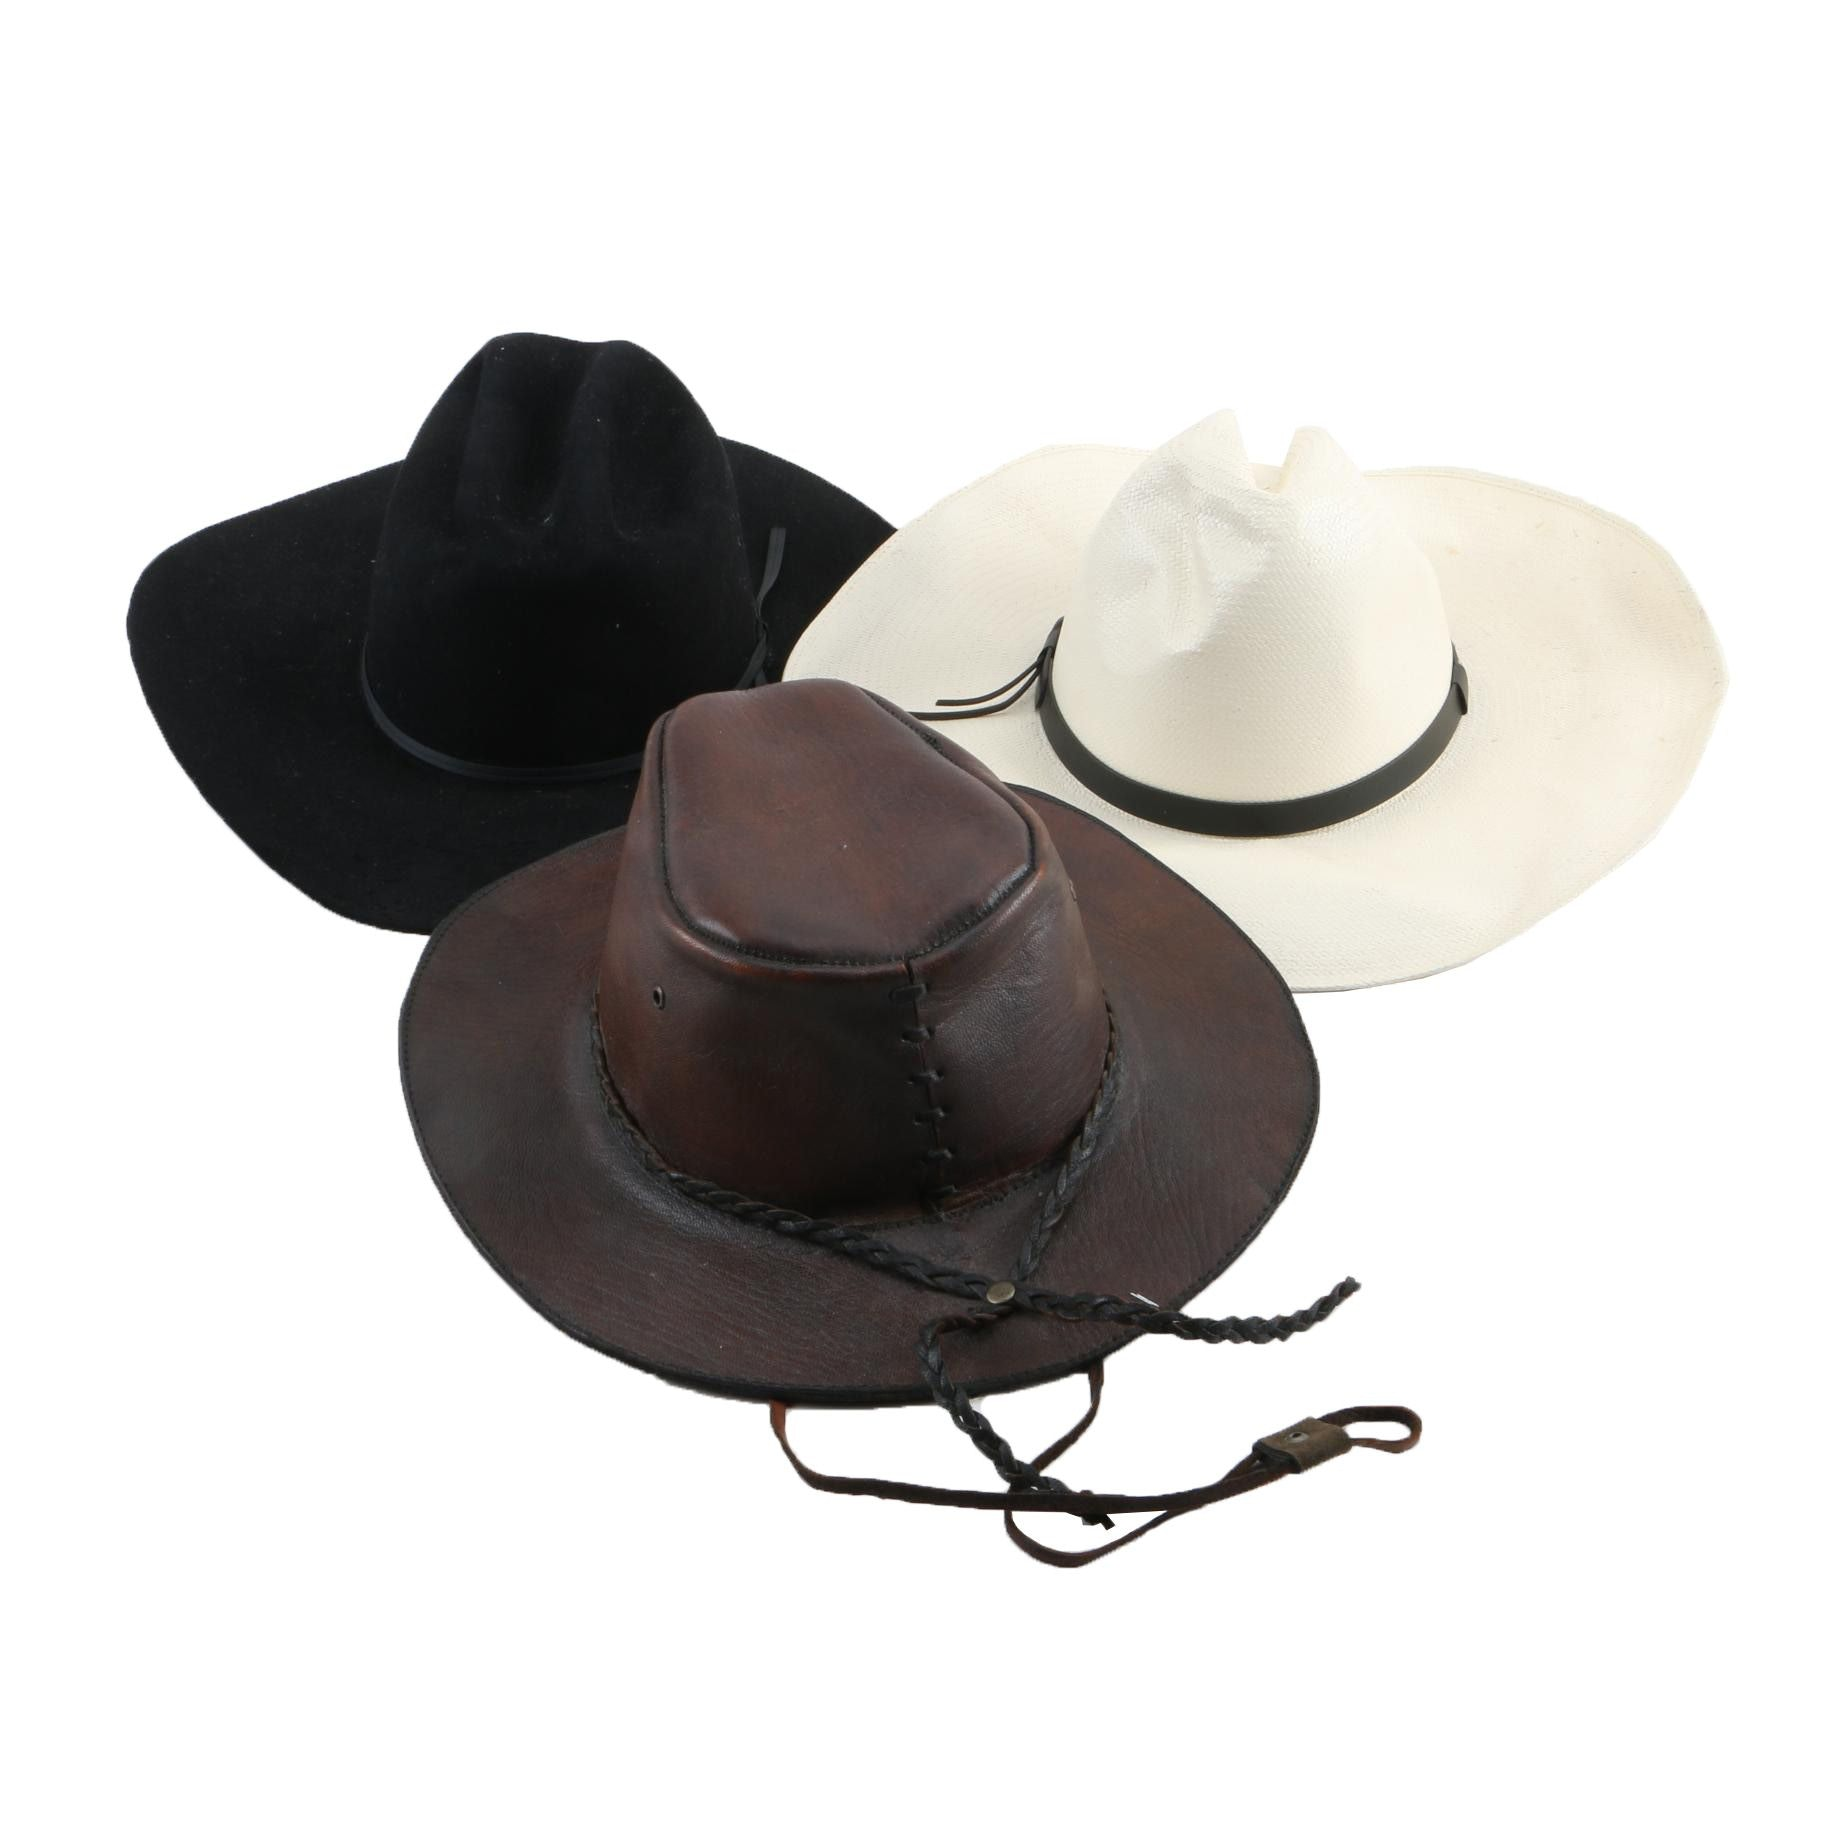 Leather Hat, Bailey 5X Beaver Felt Hat and Bailey Woven Straw Hat